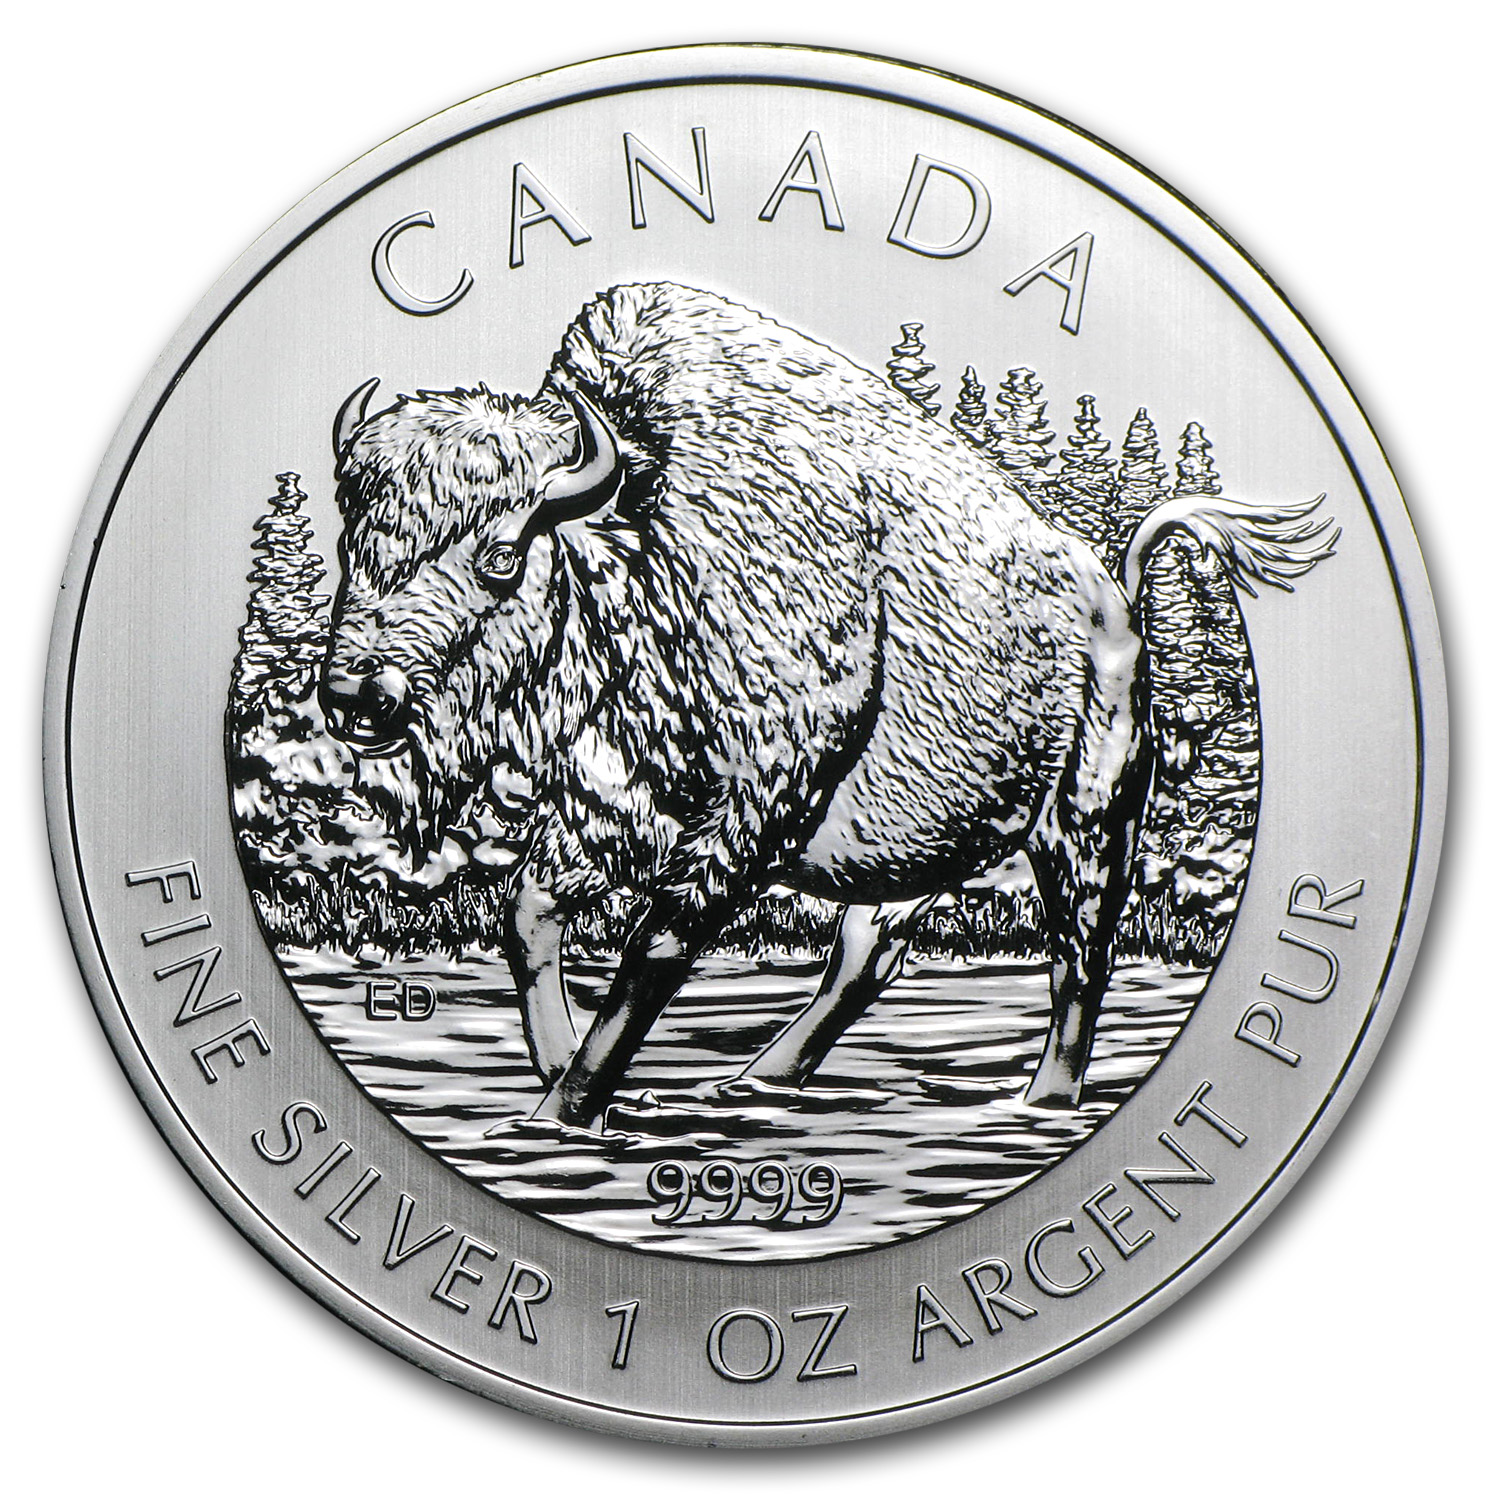 2013 1 oz Silver Canadian Wildlife Series - Wood Bison